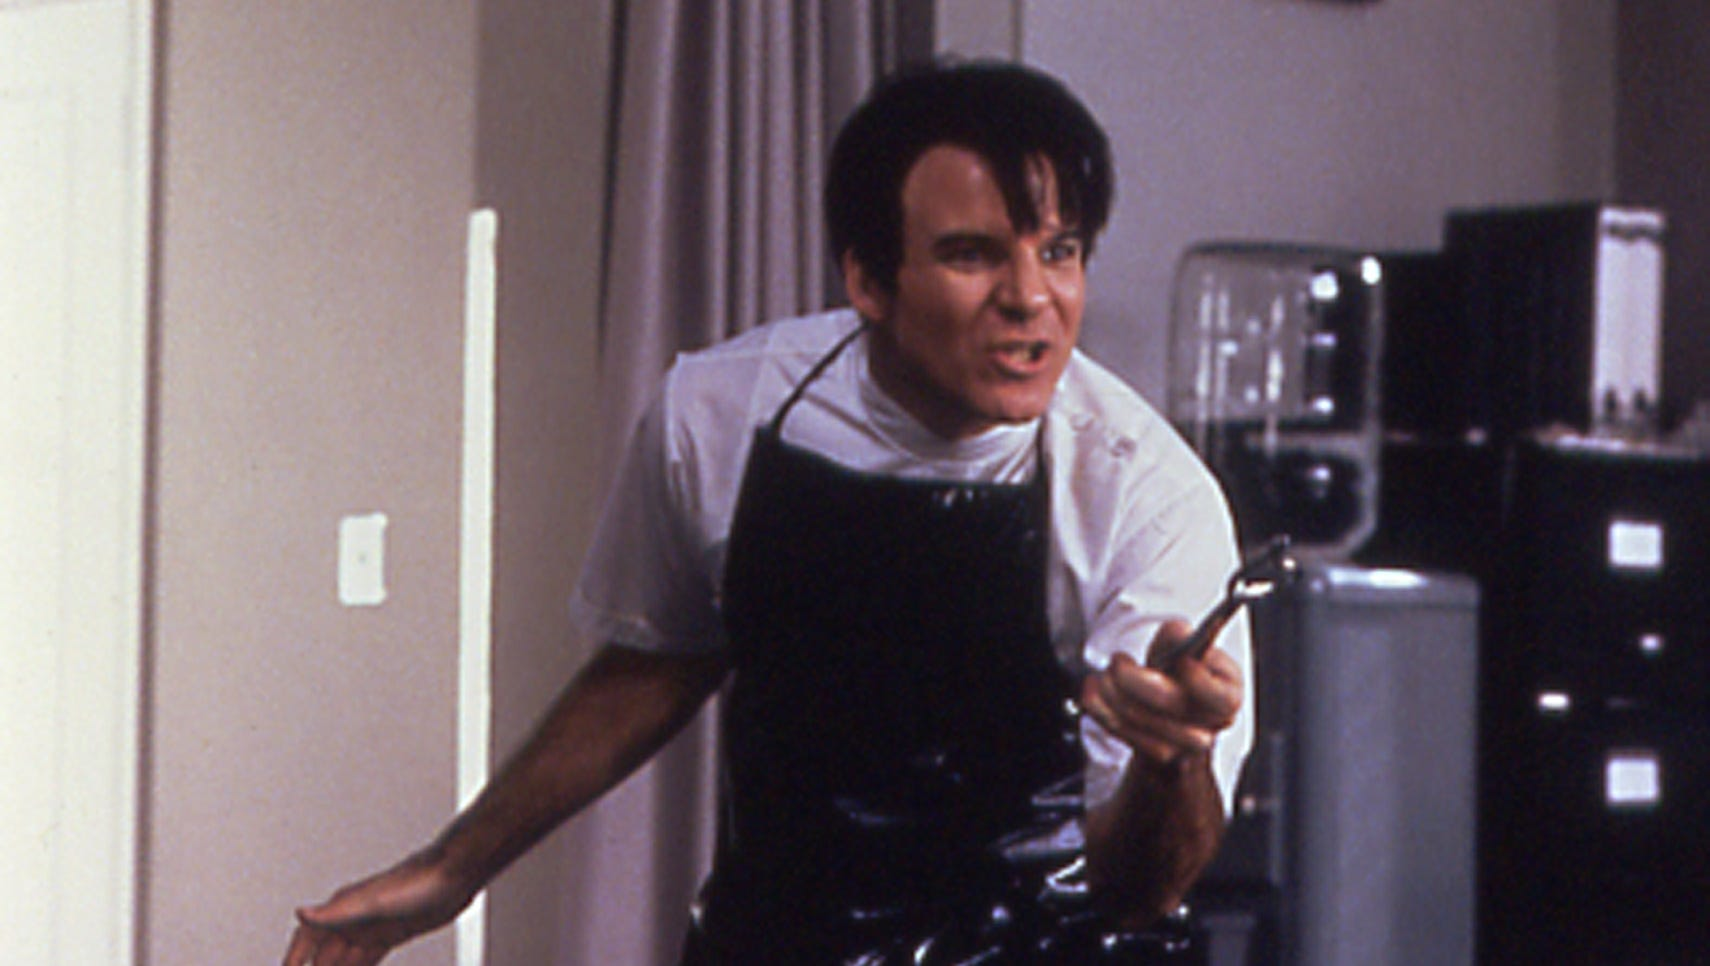 27 25 Things You Never Knew About Little Shop of Horrors